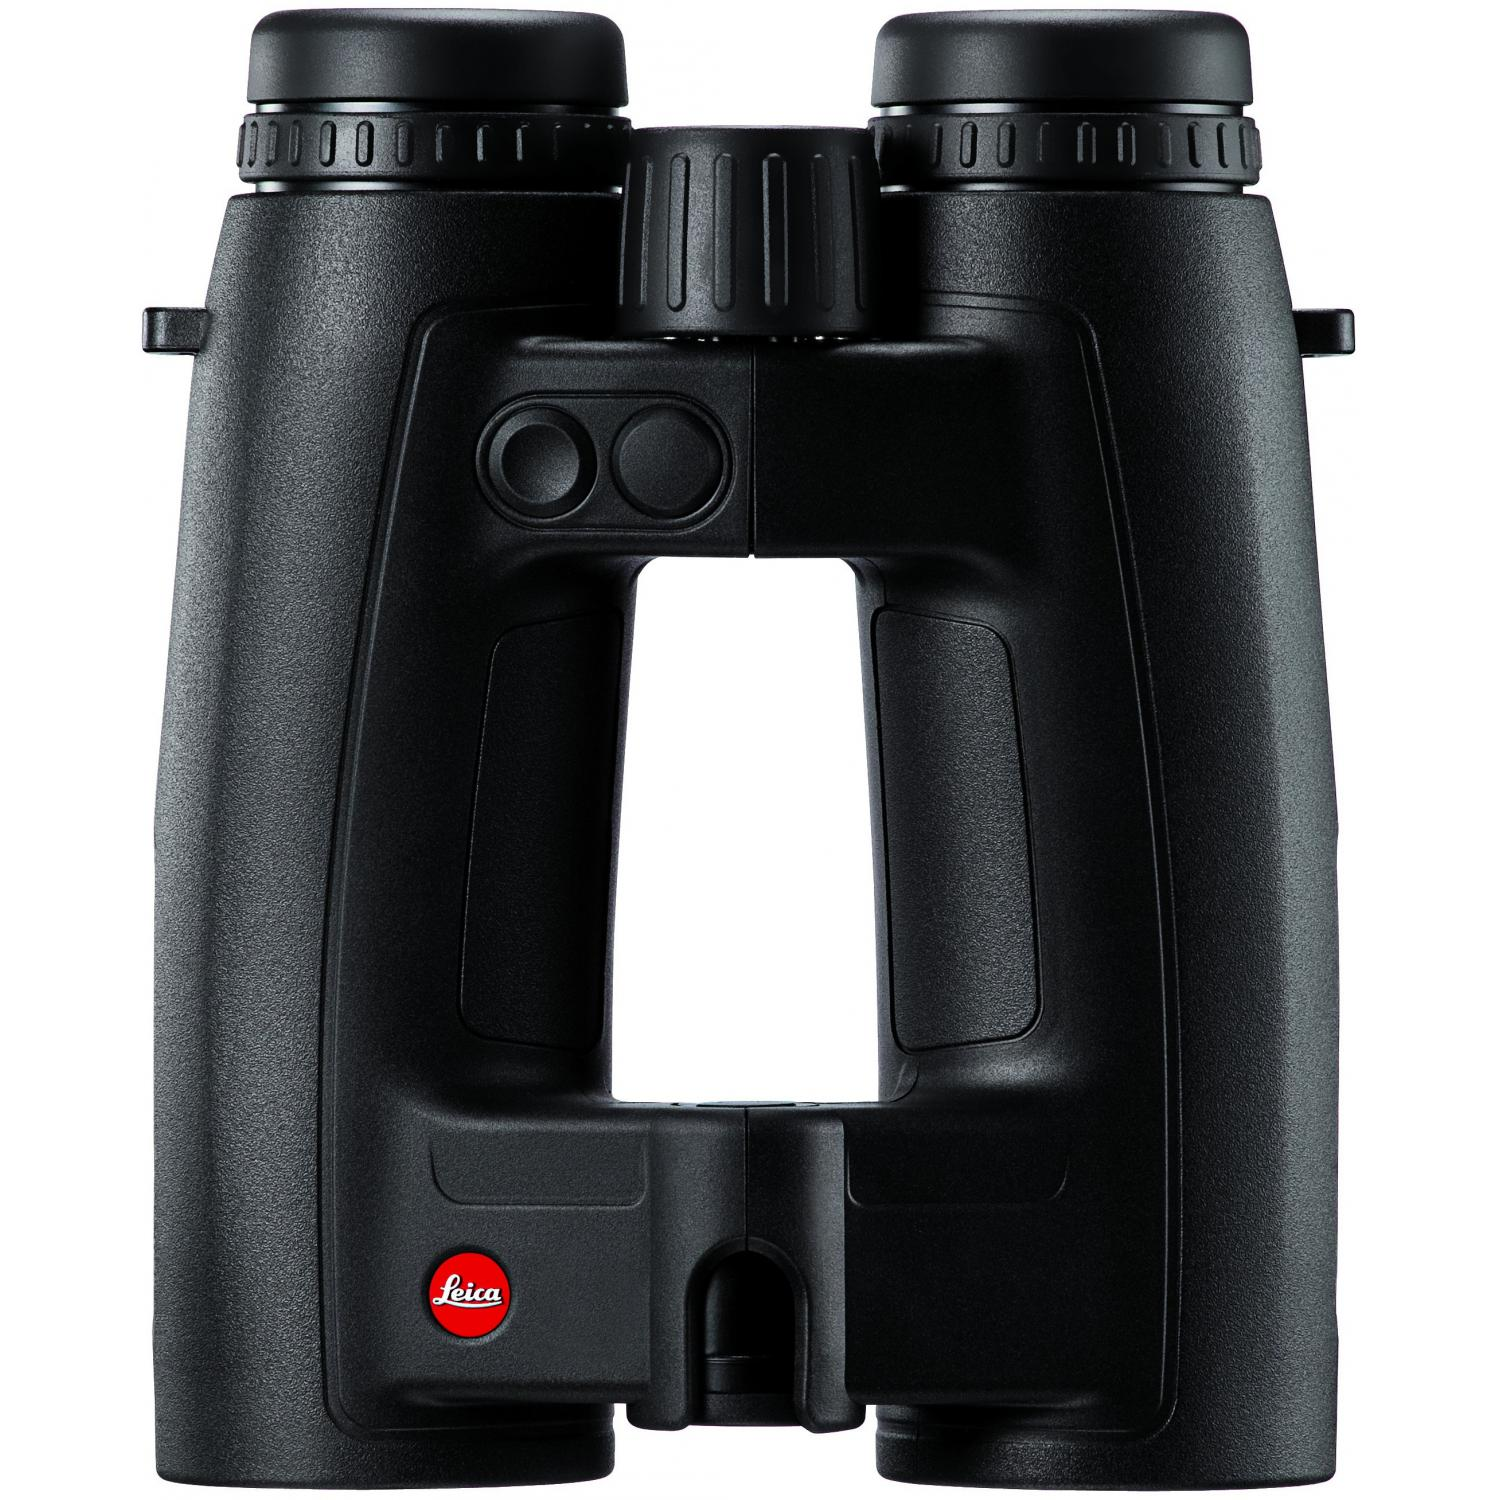 Picture of Leica Geovid HD-B 10 X 42 Laser Rangefinder Binoculars With User Ballistic Interface